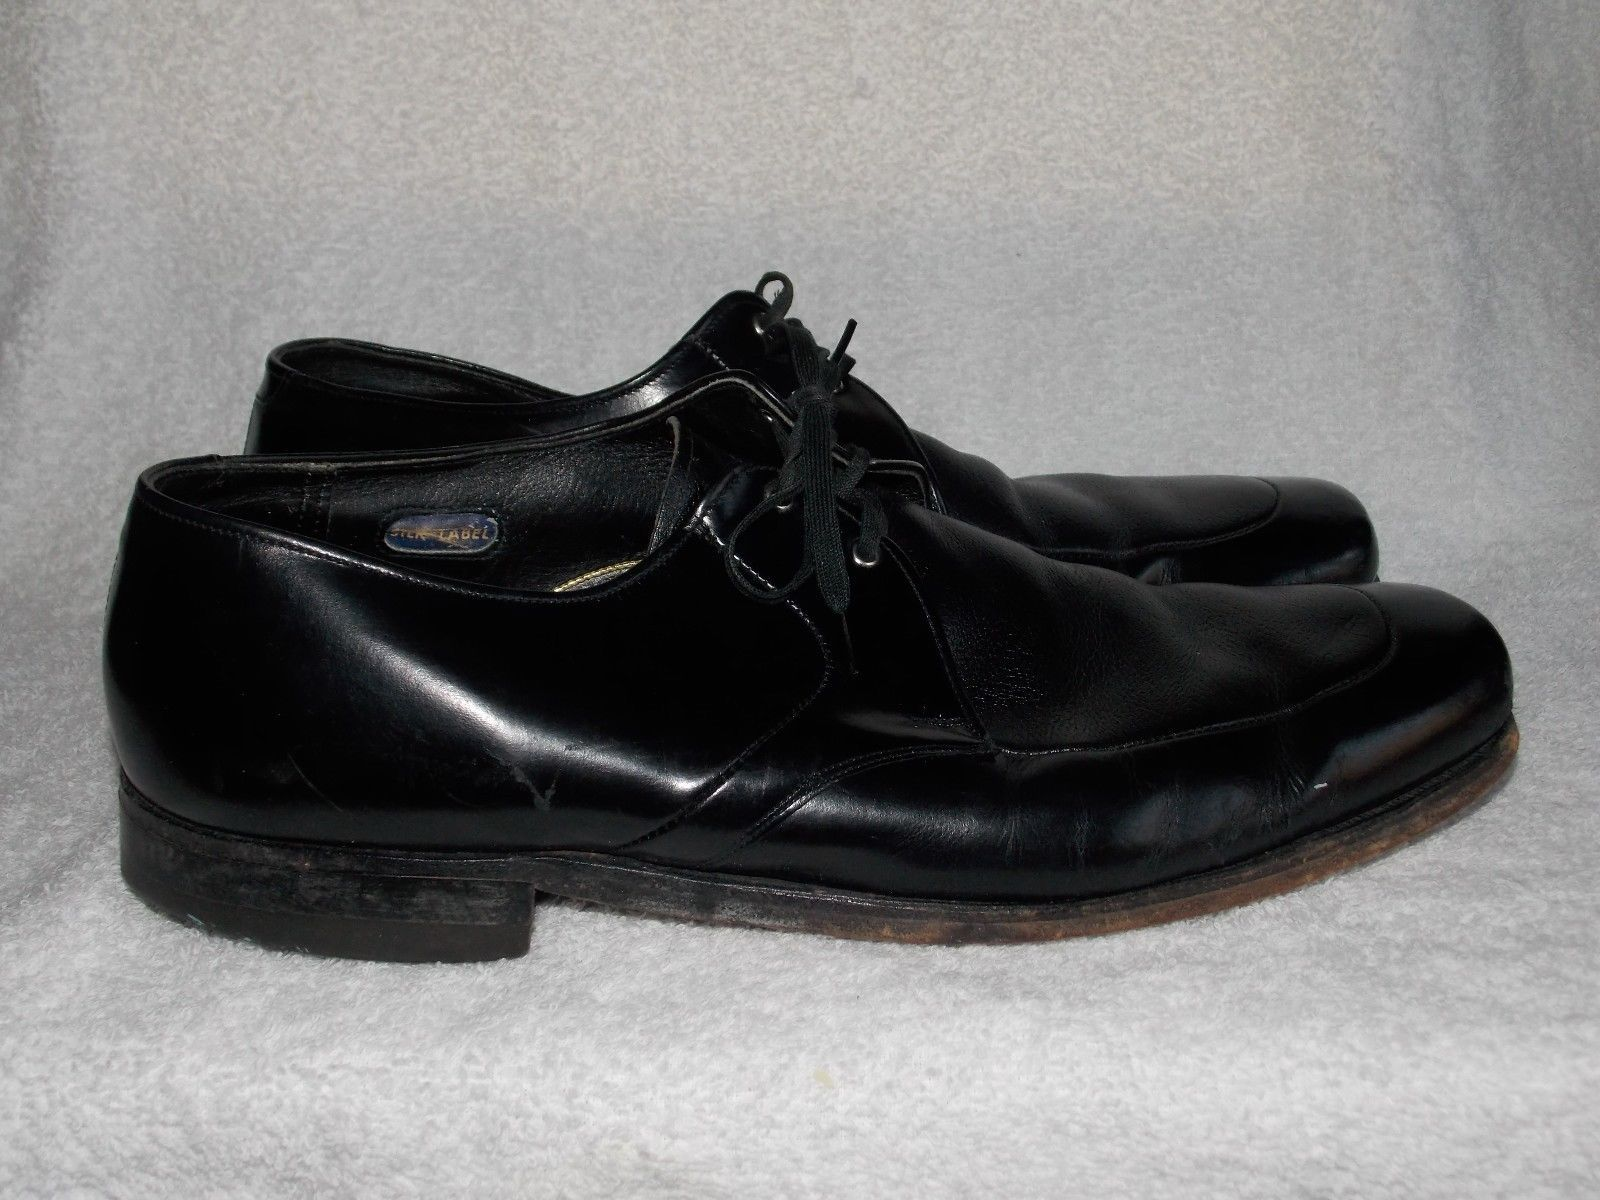 Primary image for Vintage Black Leather DERBY Oxfords Lace Up Shoes 13C Used